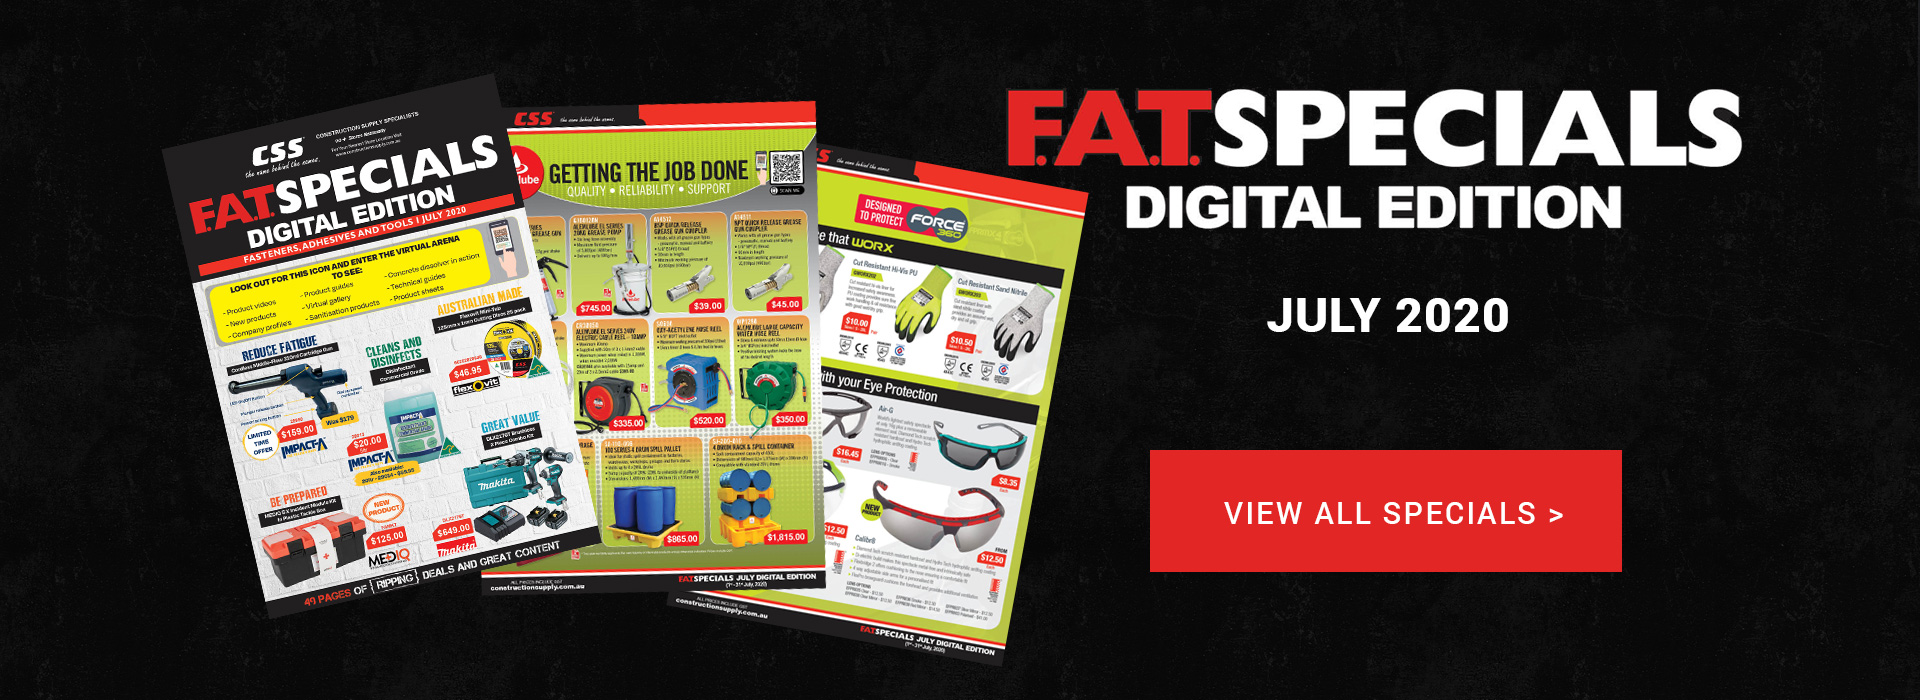 fat specials digital edition July 2020